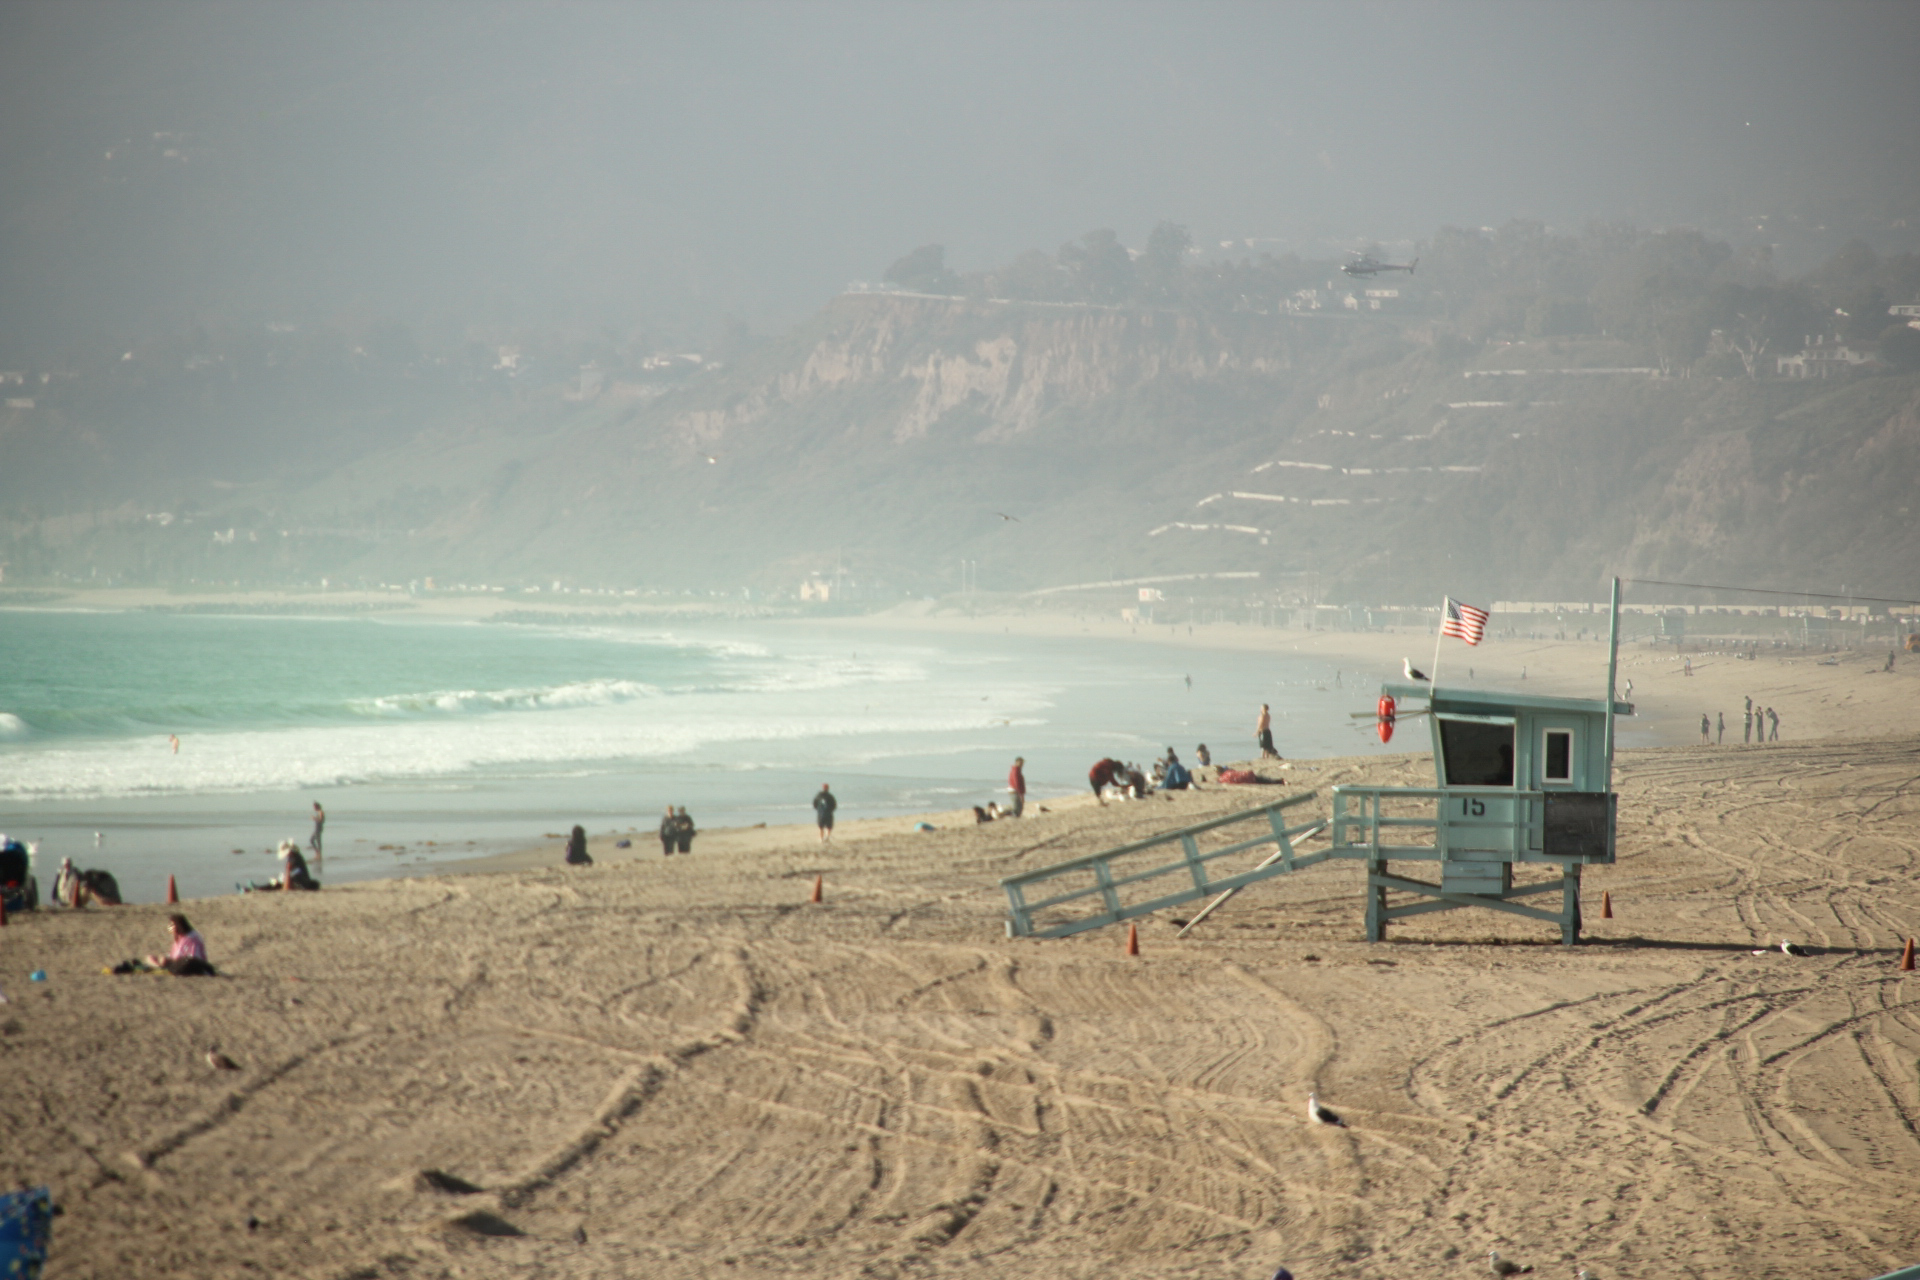 Image_Santa_Monica_Graded-2.jpg